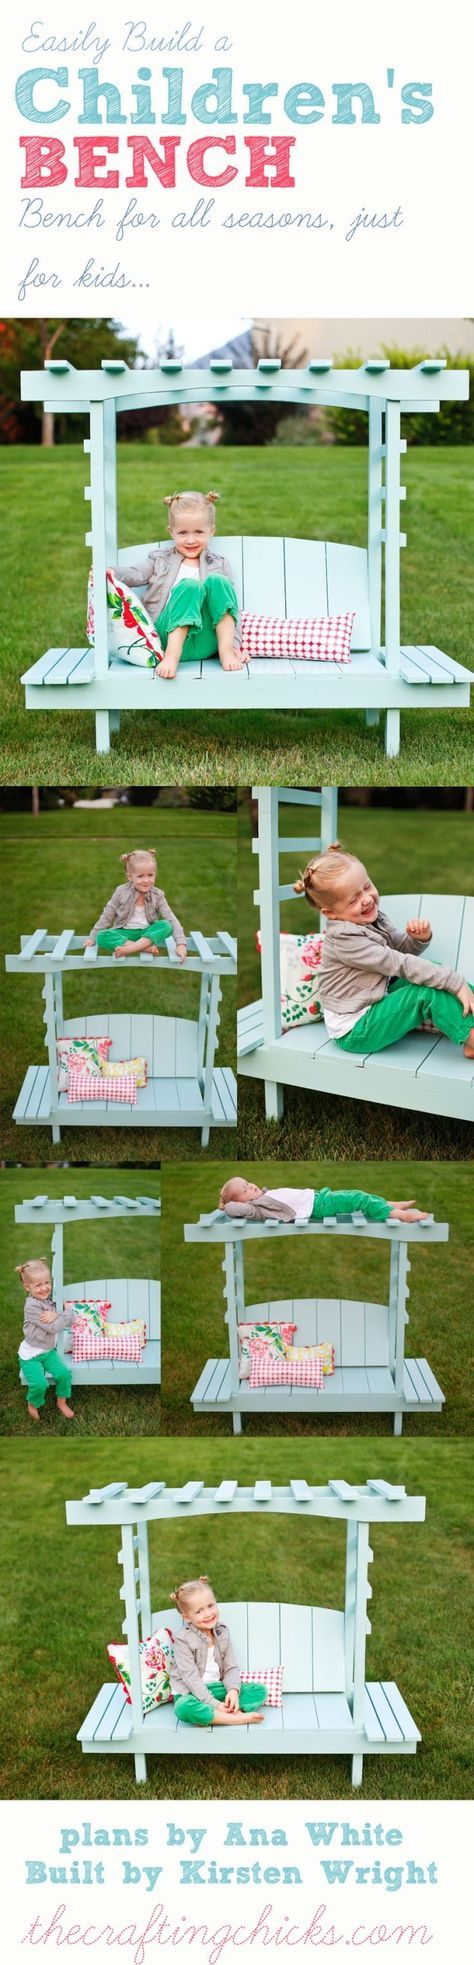 Child's Bench With Arbor Plans An Easy DIY